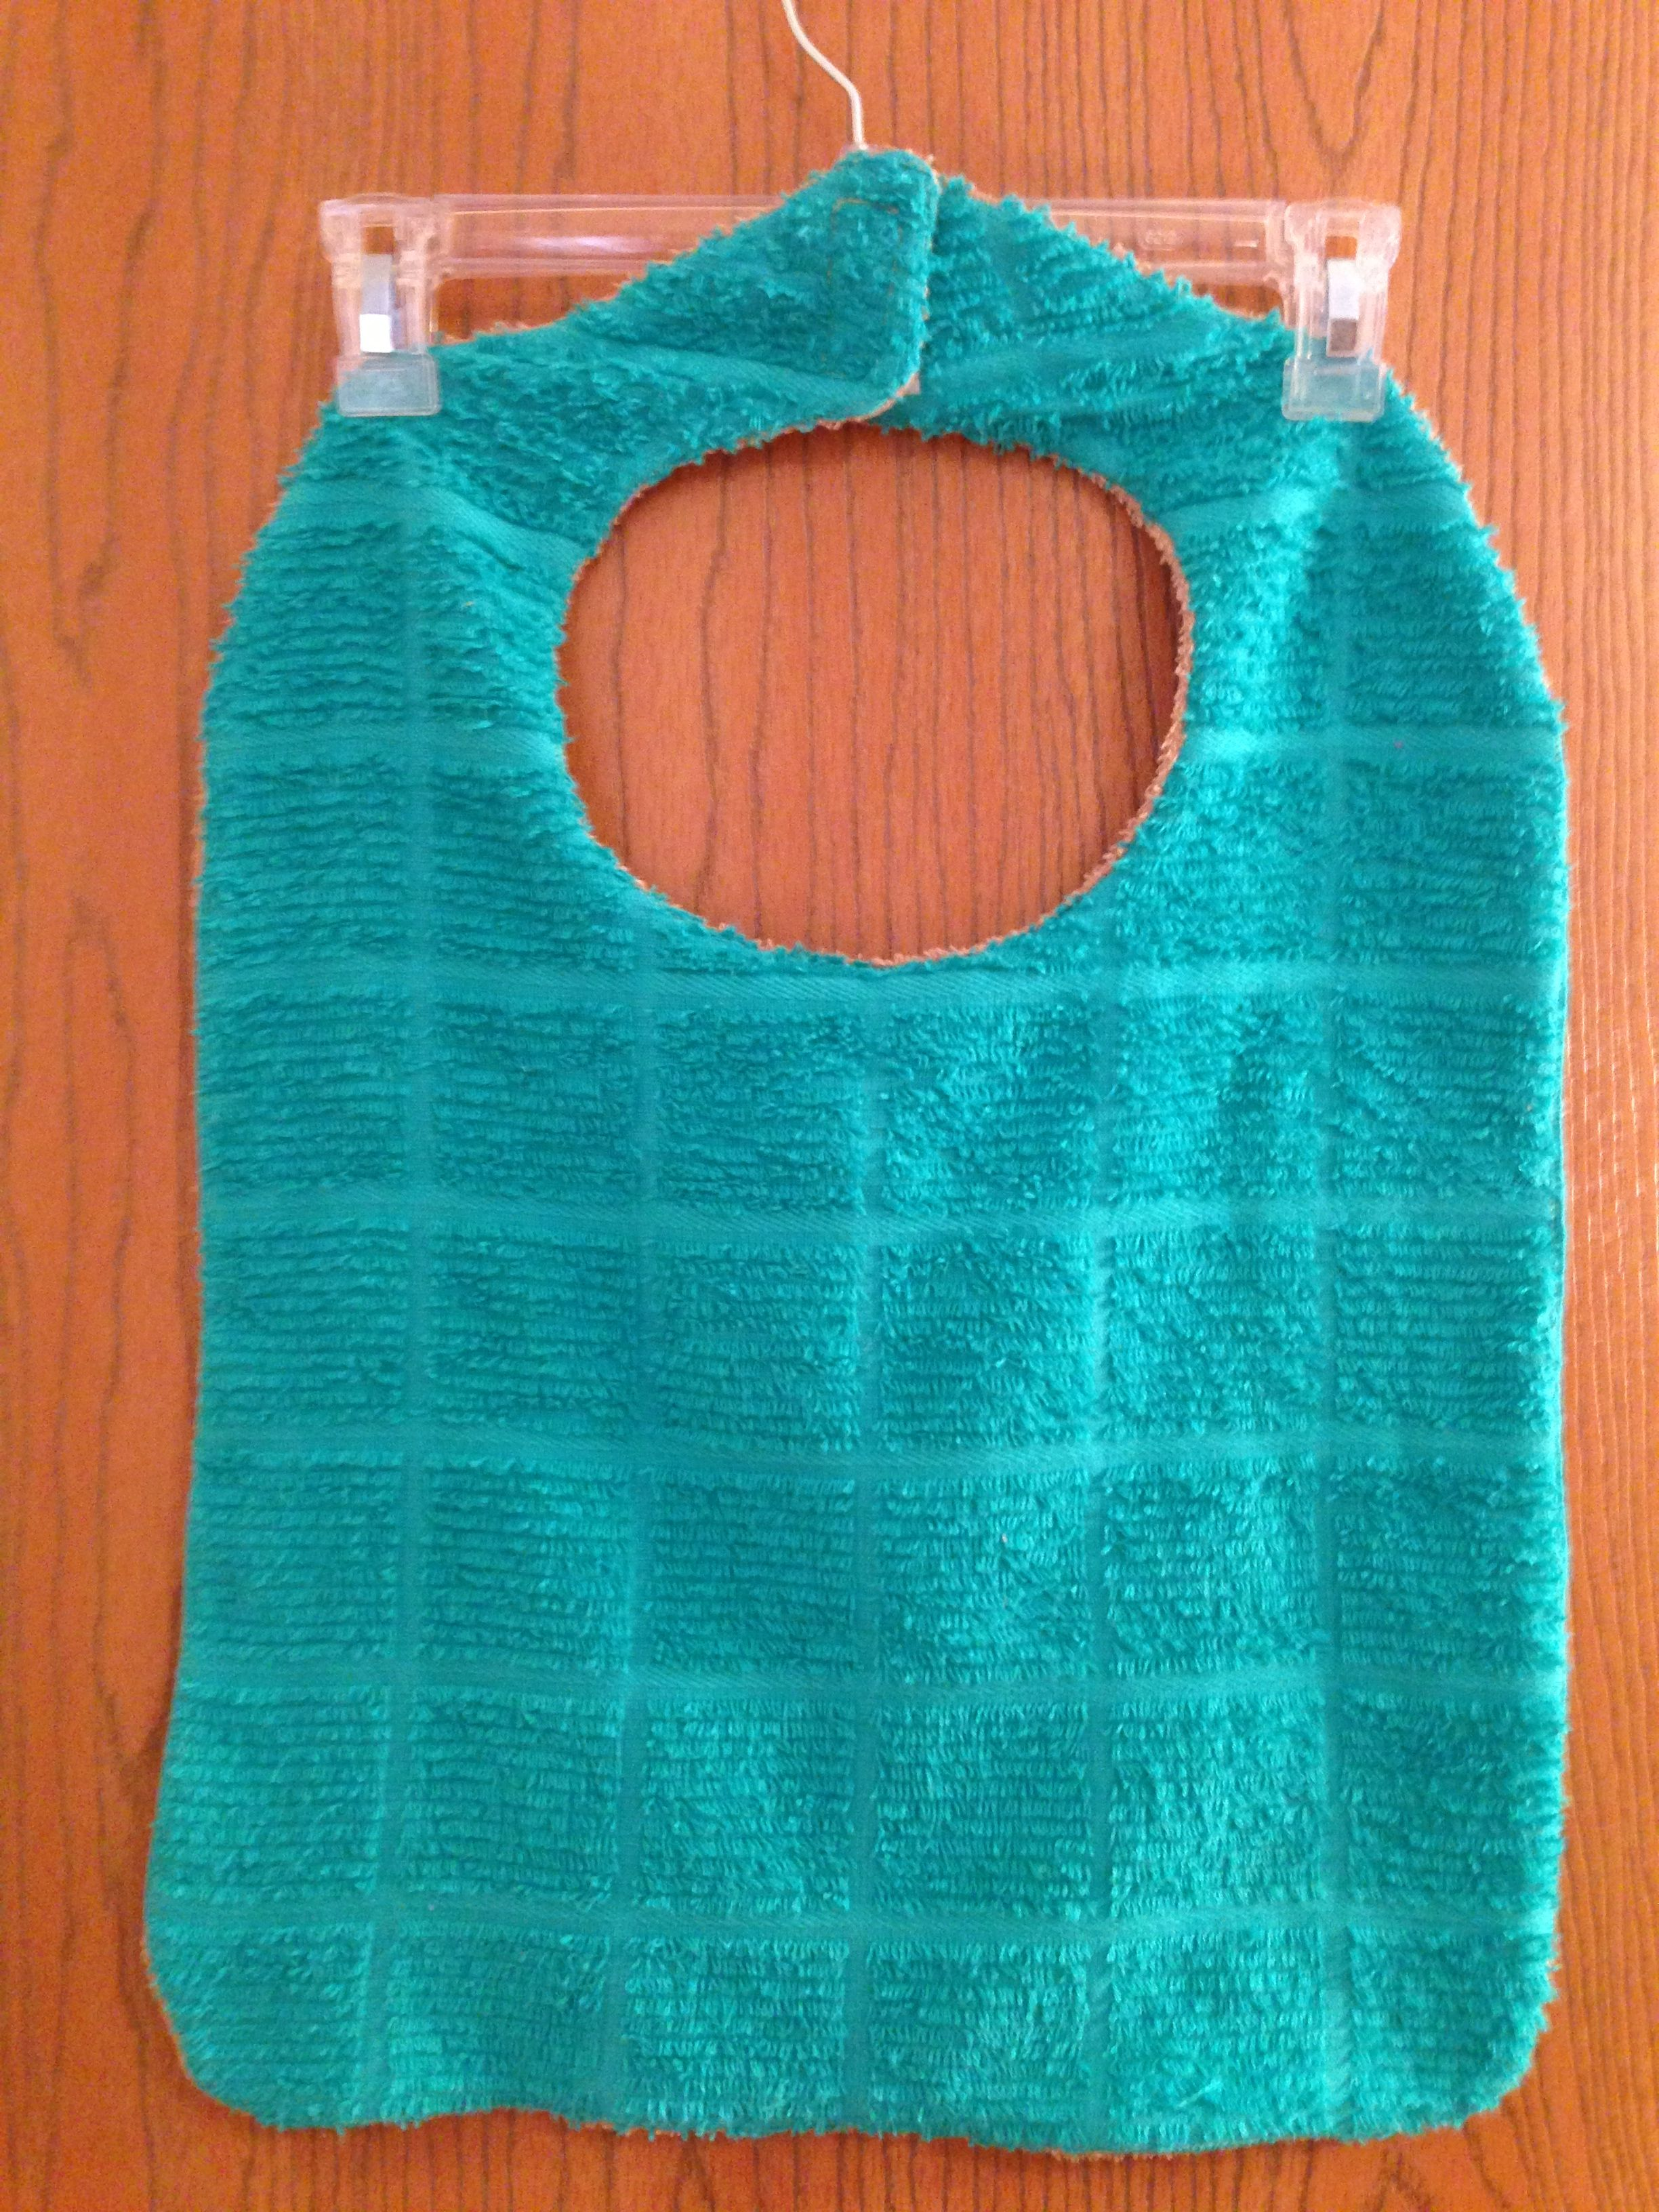 Adult clothing protector I made from a hand towel